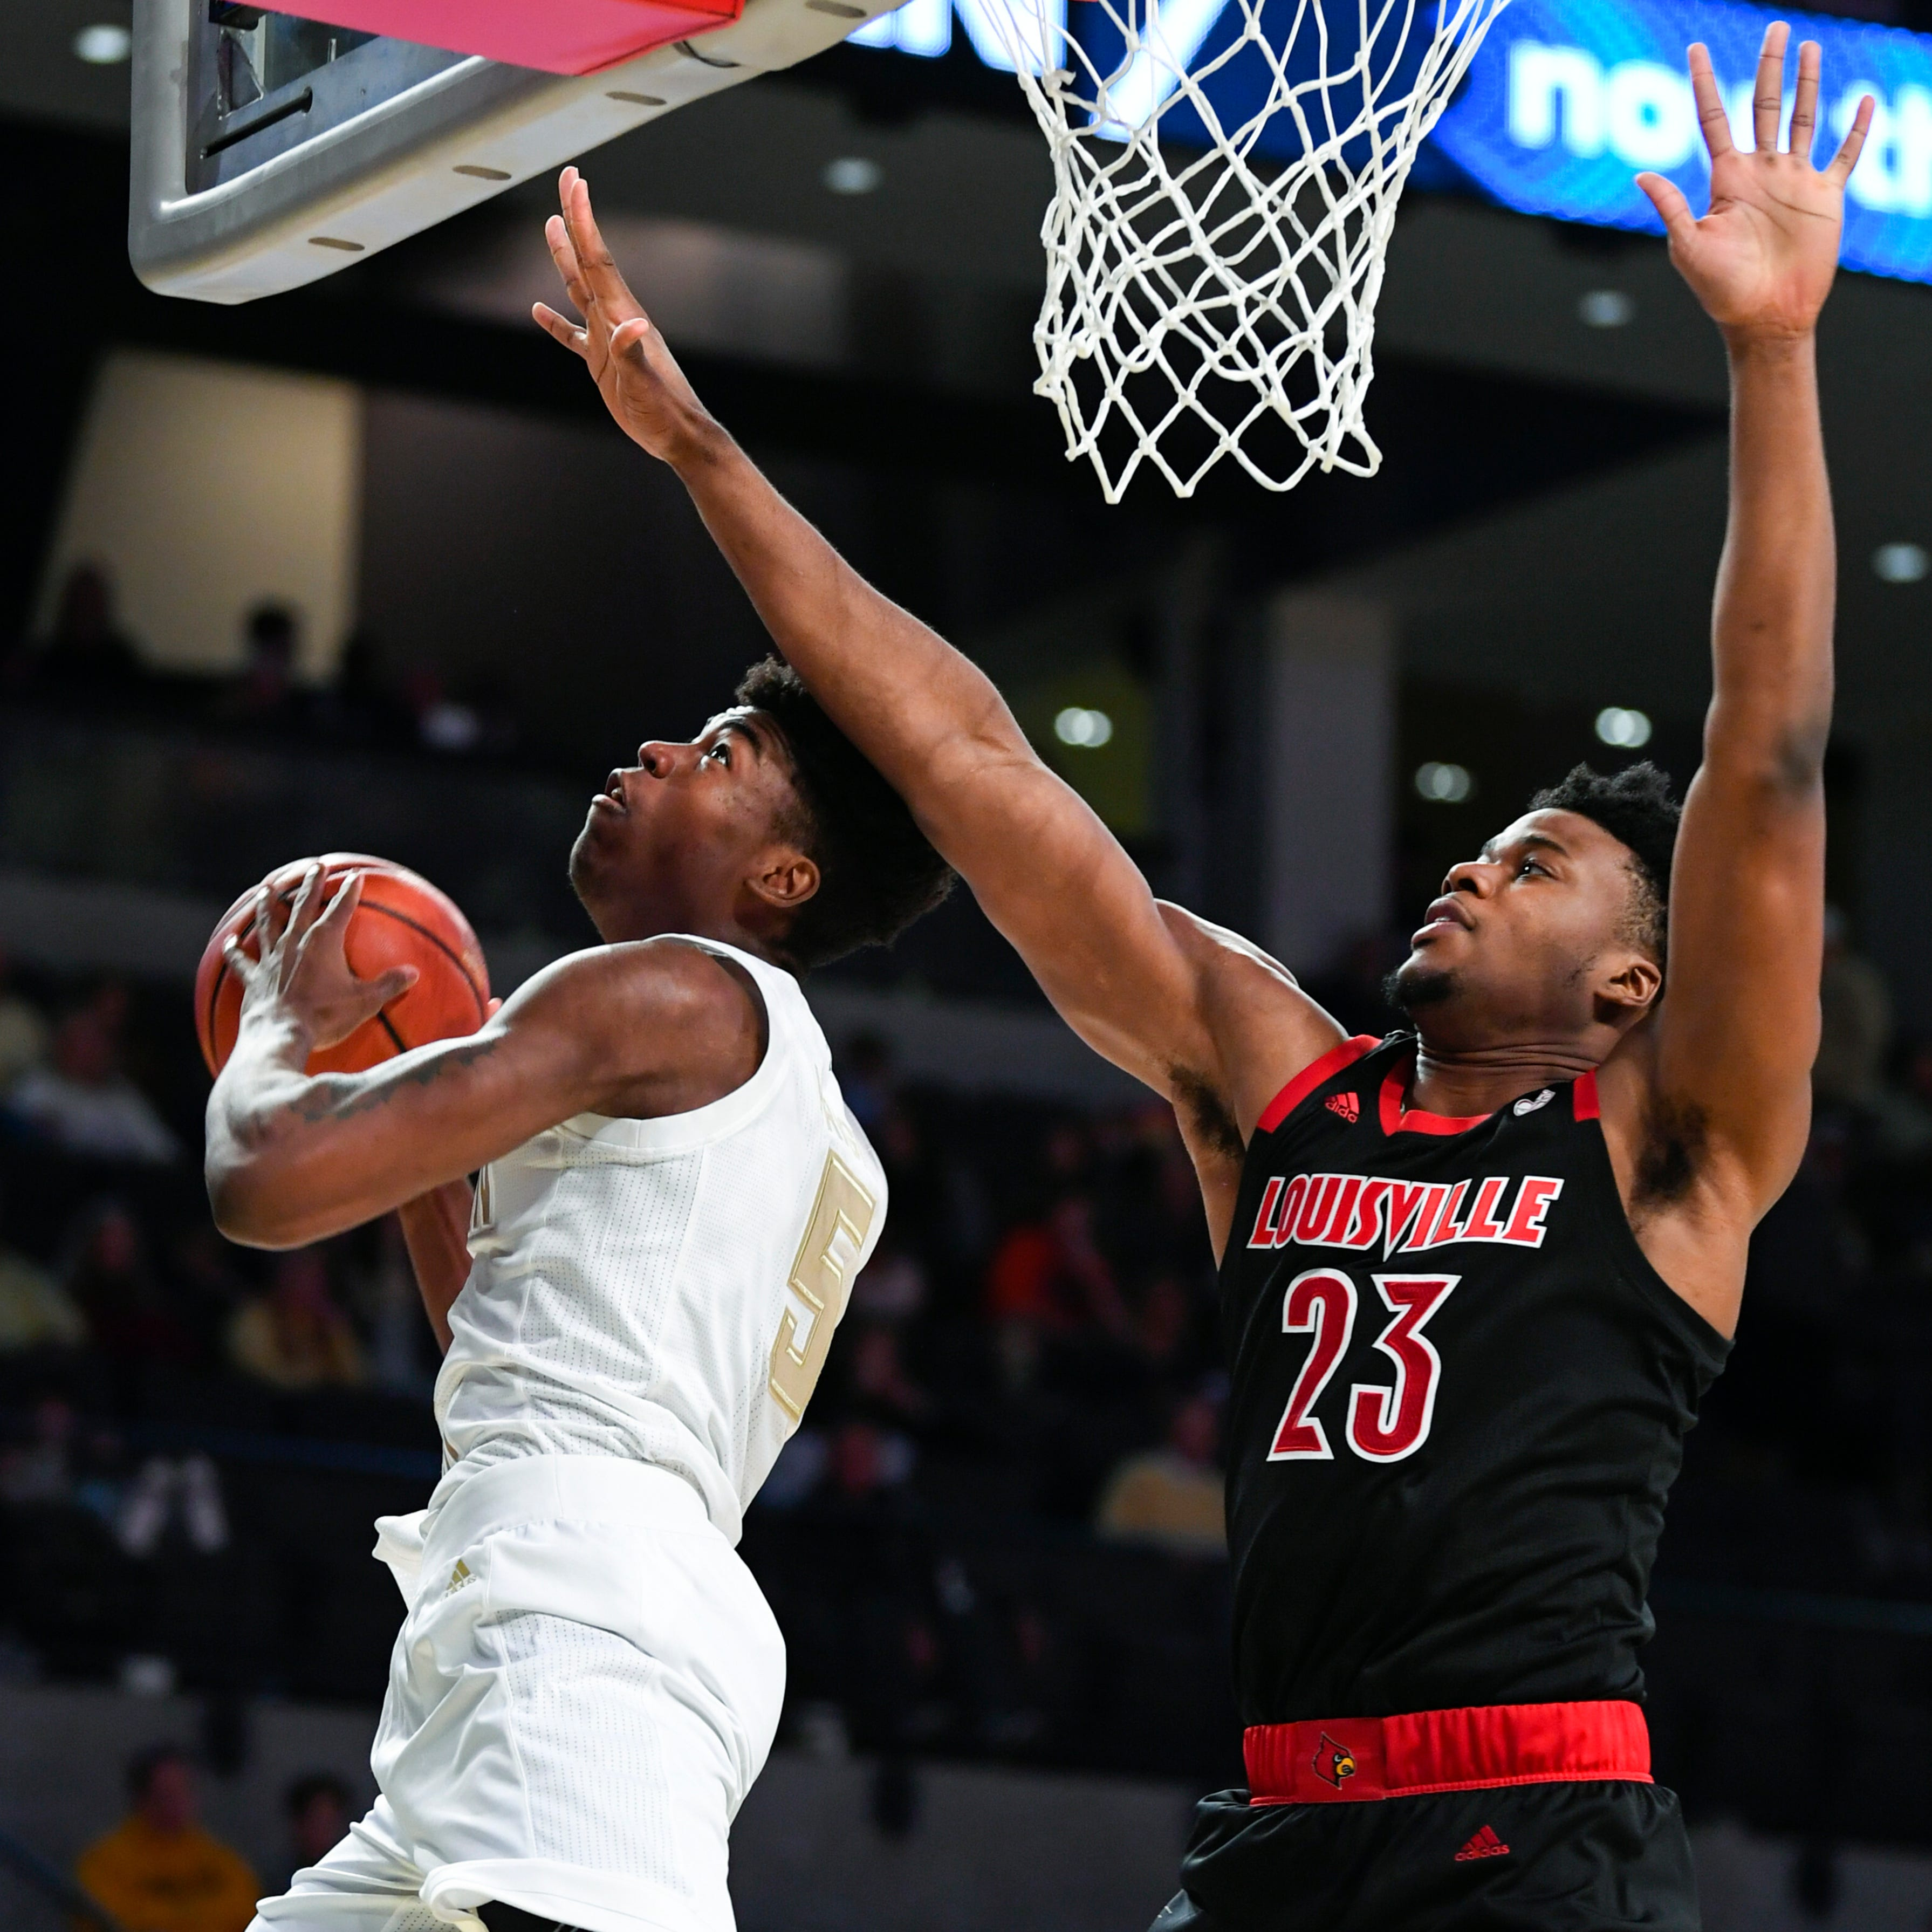 Has U of L basketball's defense turned a corner? Chris Mack sounds happy